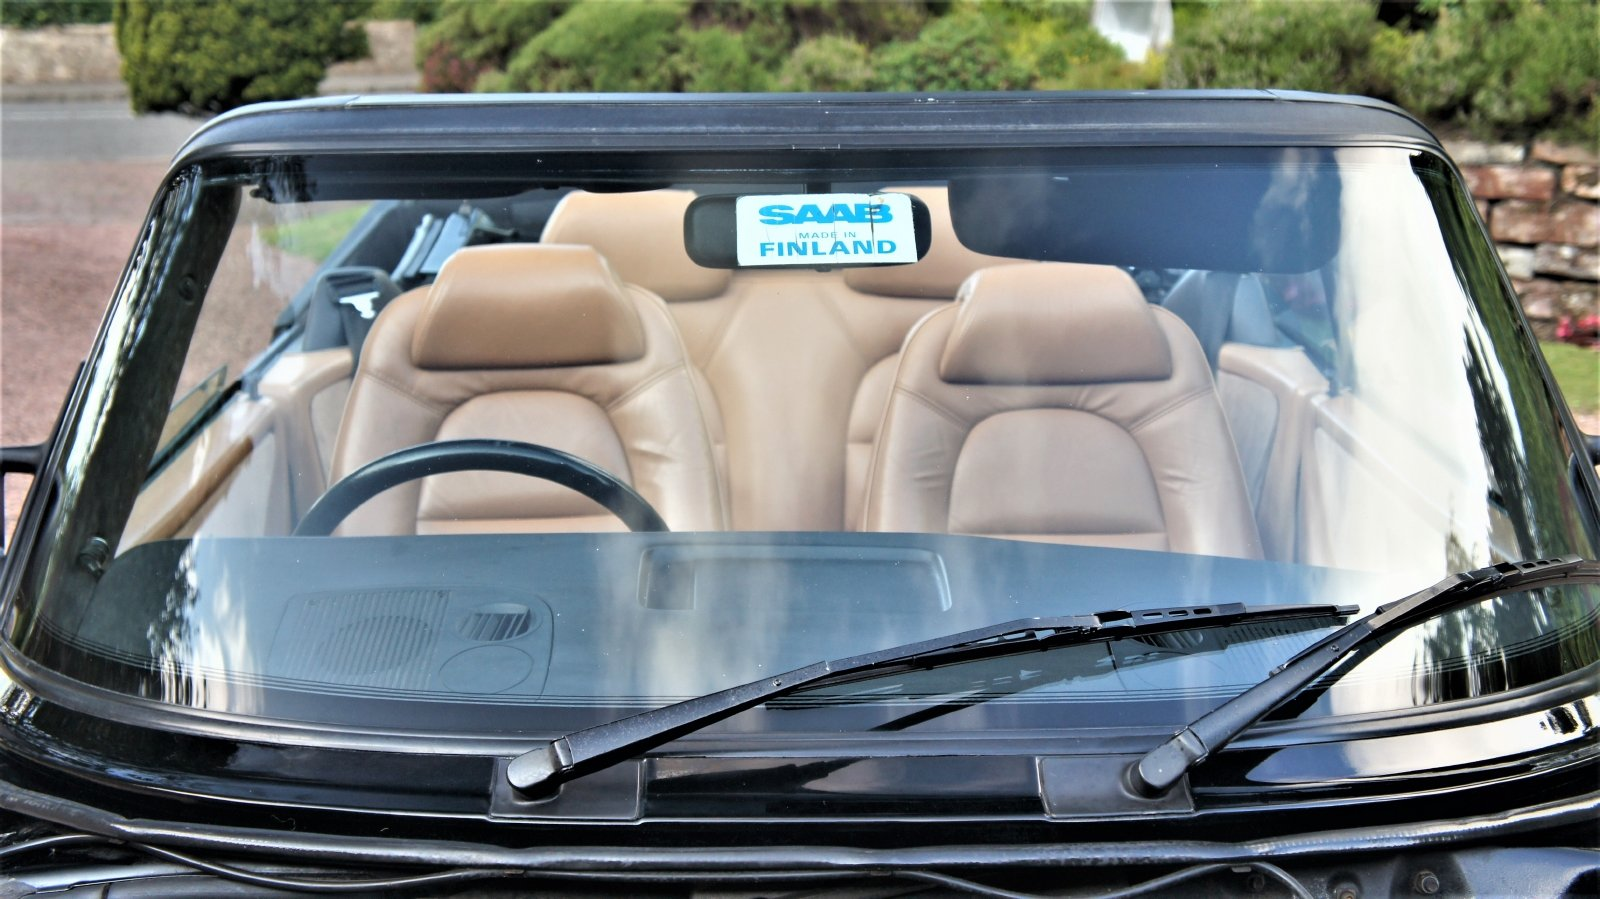 1987 SAAB 900 16 VALVE TURBO CONVERTIBLE - 74000 MILES For Sale (picture 5 of 6)